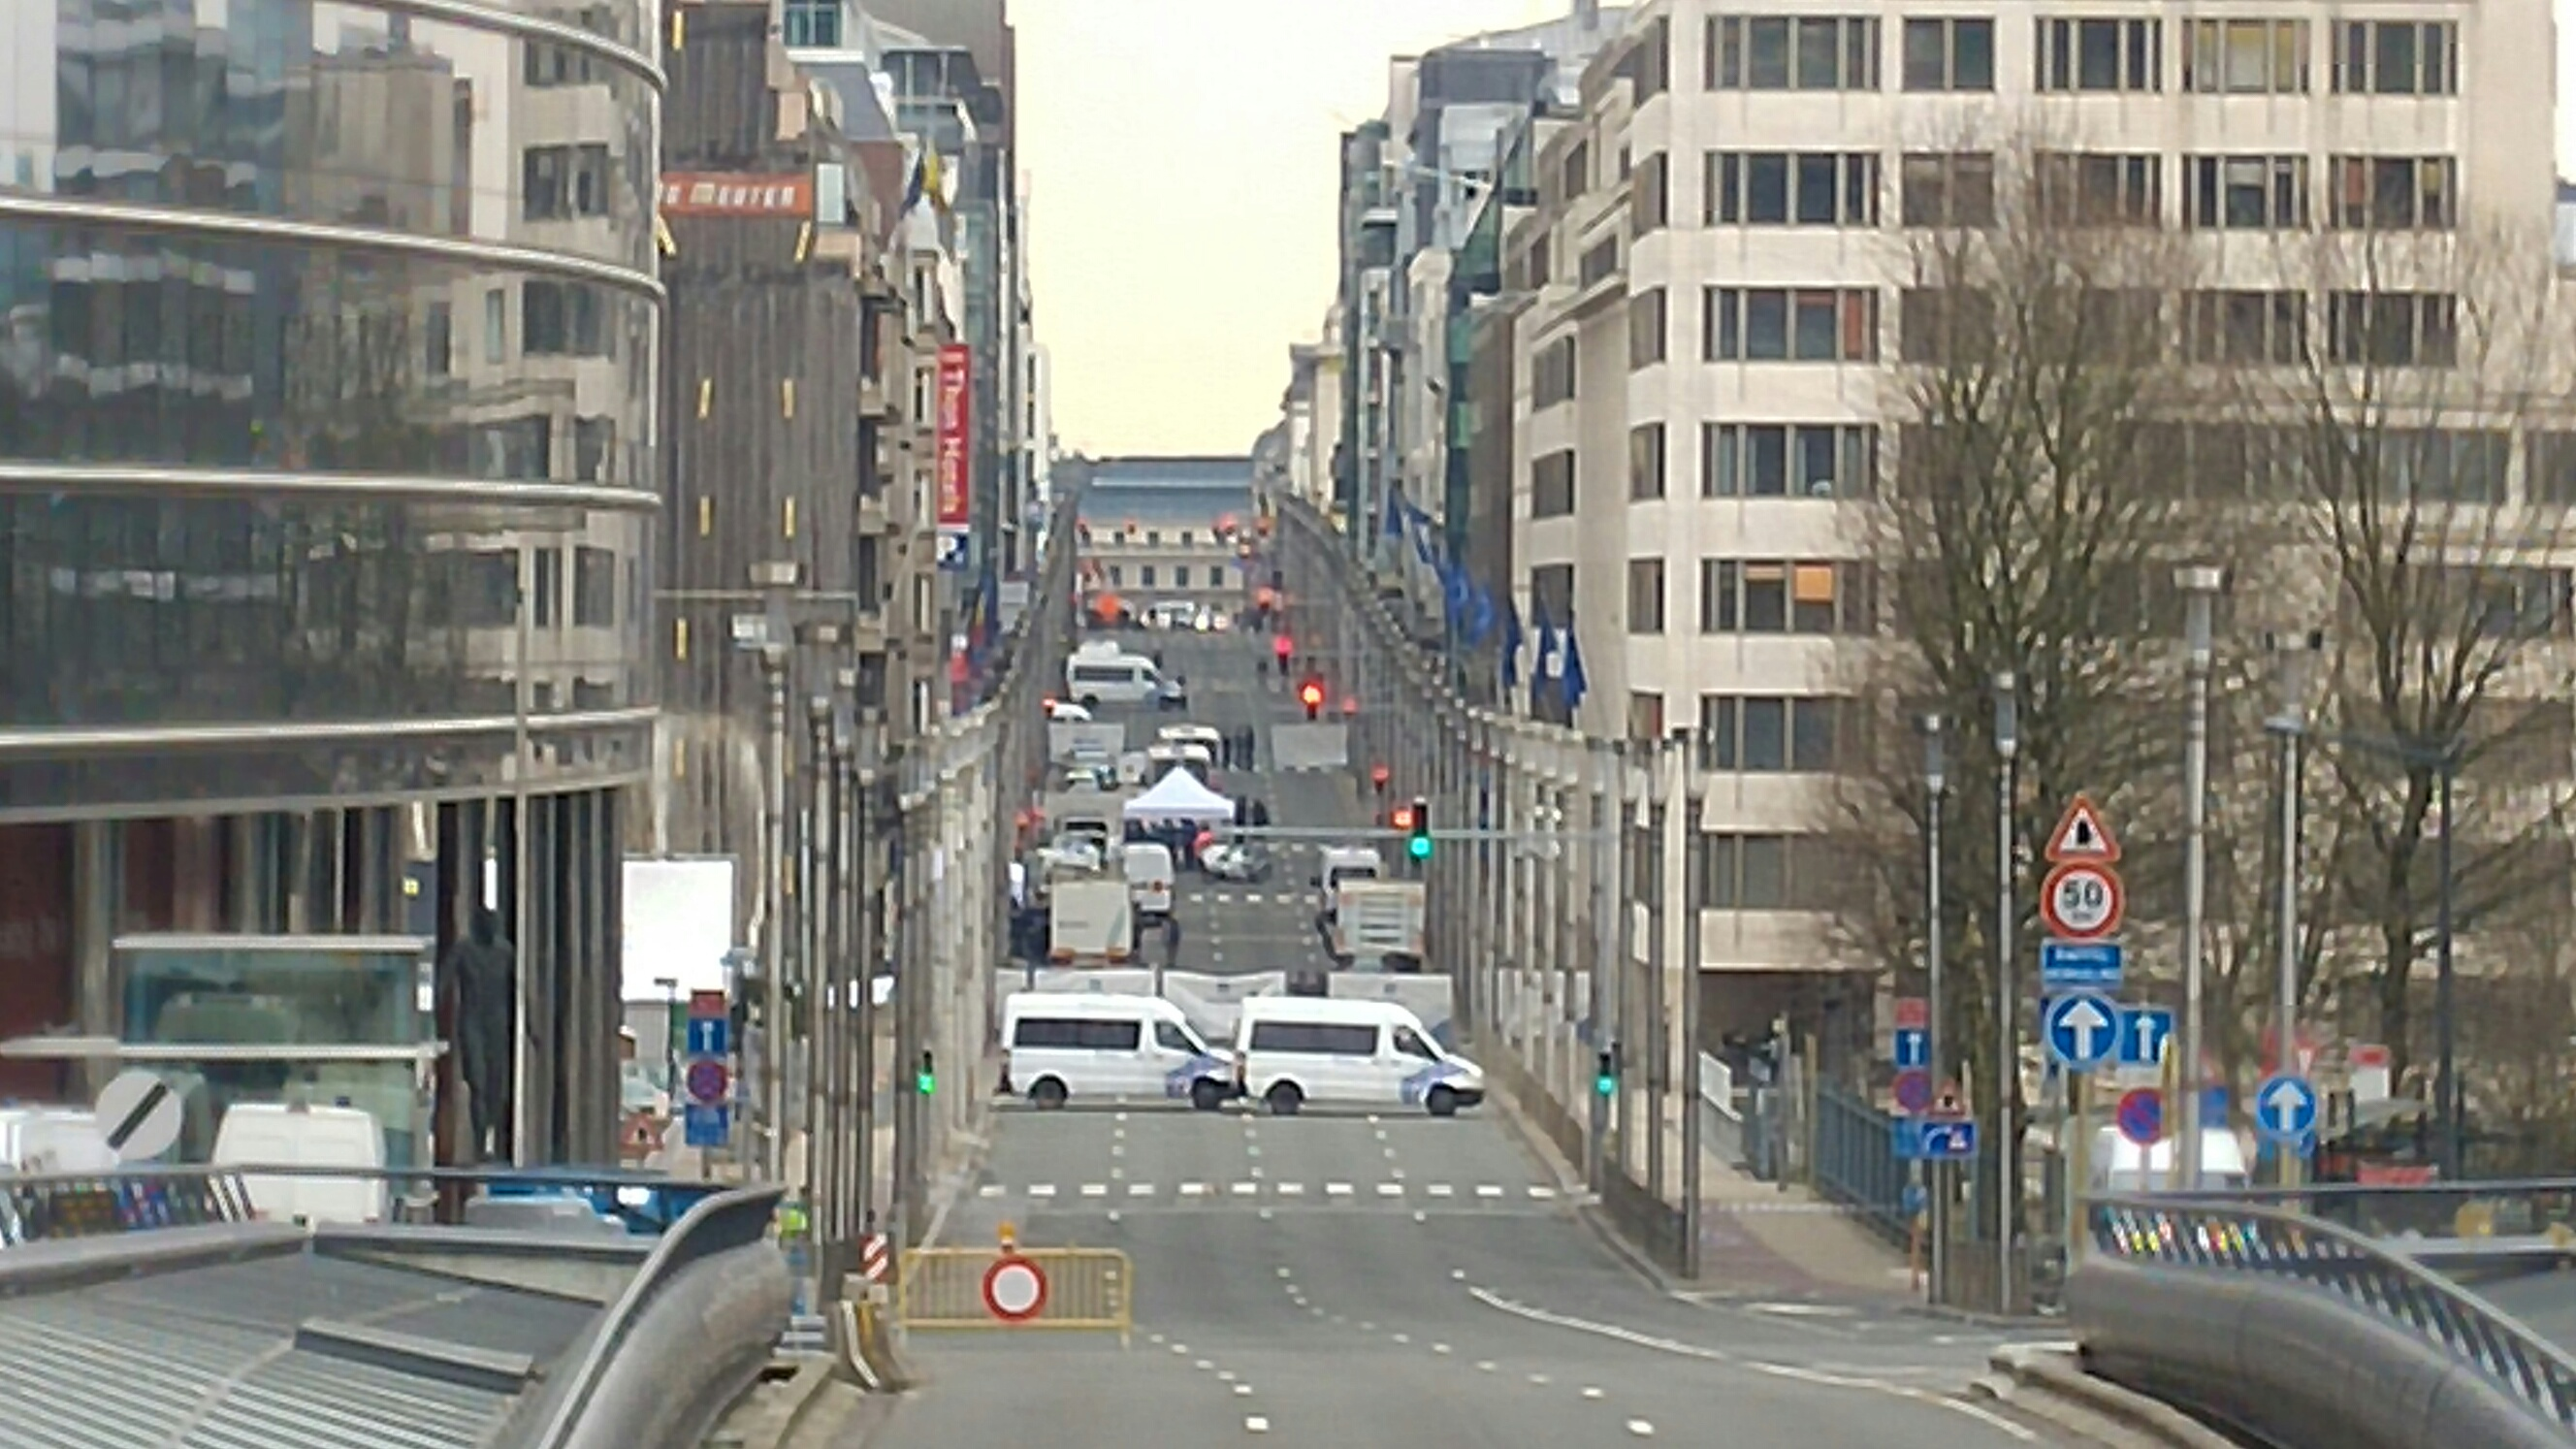 The area around Maelbeek was cordoned off. [James Crisp]